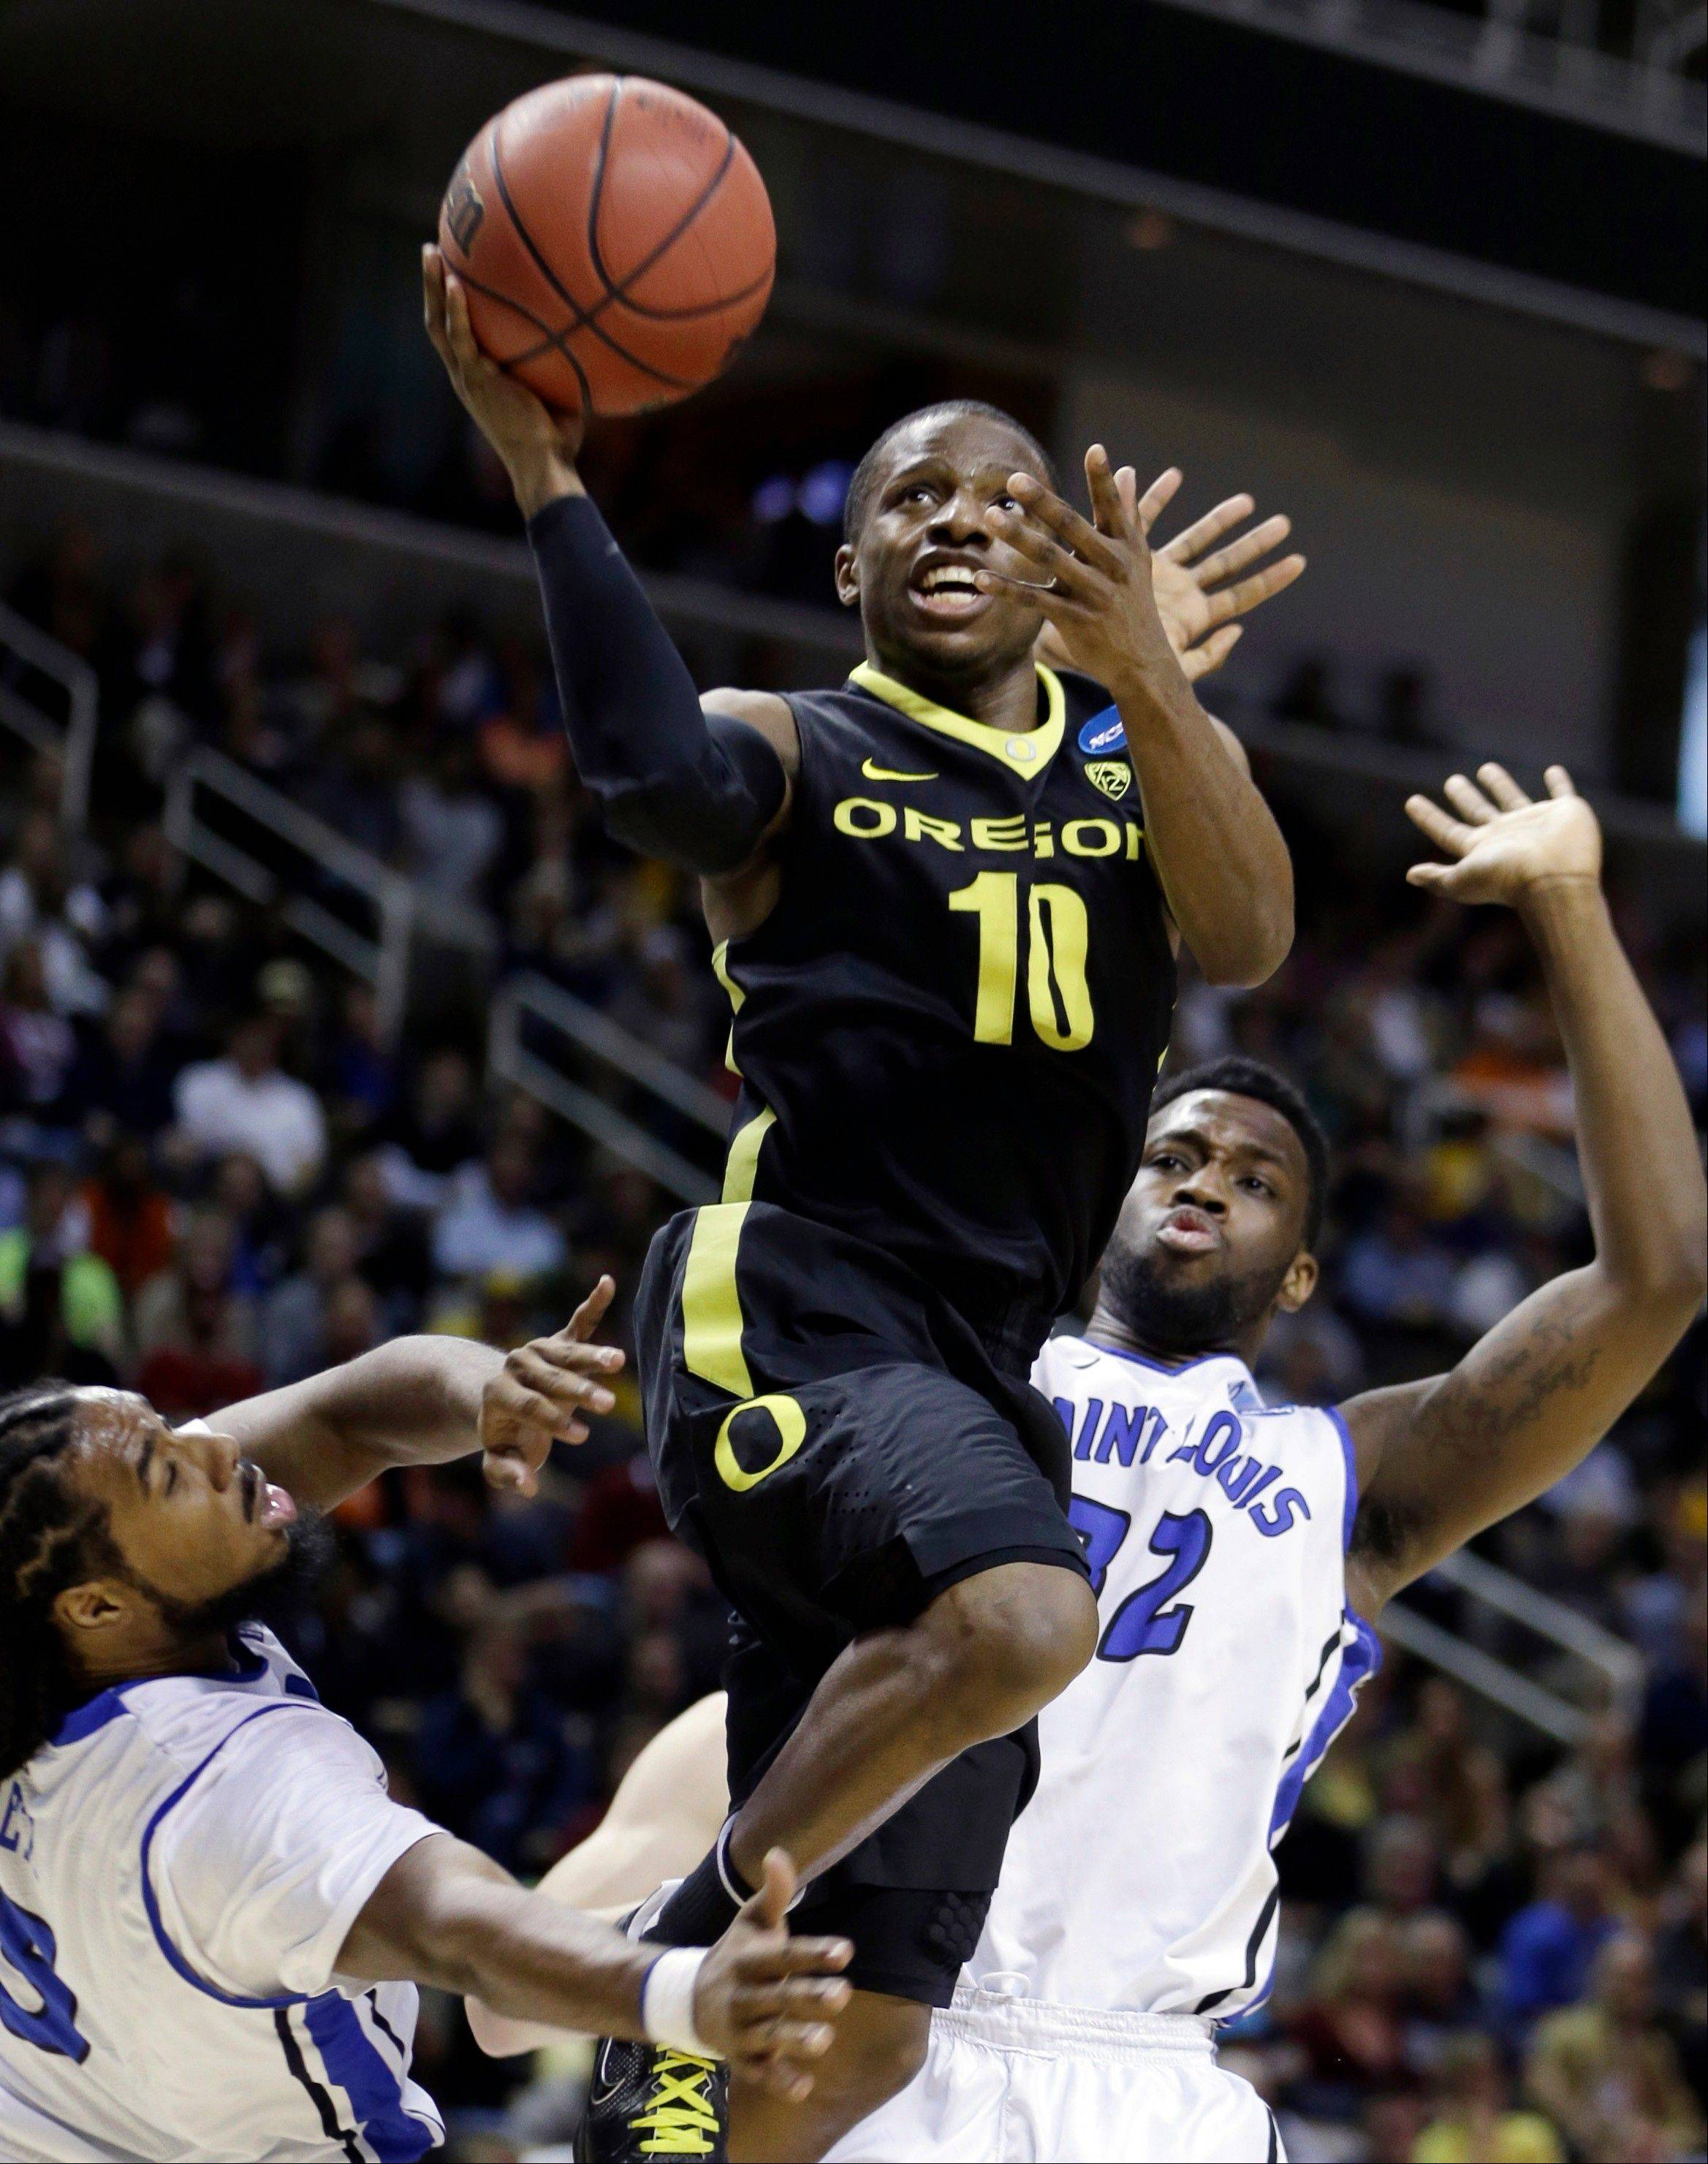 Oregon's Johnathan Loyd (10) lays up a shot over Saint Louis guard Kwamain Mitchell, left, and Cory Remekun (32) during the second half of a third-round game in the NCAA college basketball tournament Saturday, March 23, 2013, in San Jose, Calif. Oregon won the game, 74-57.